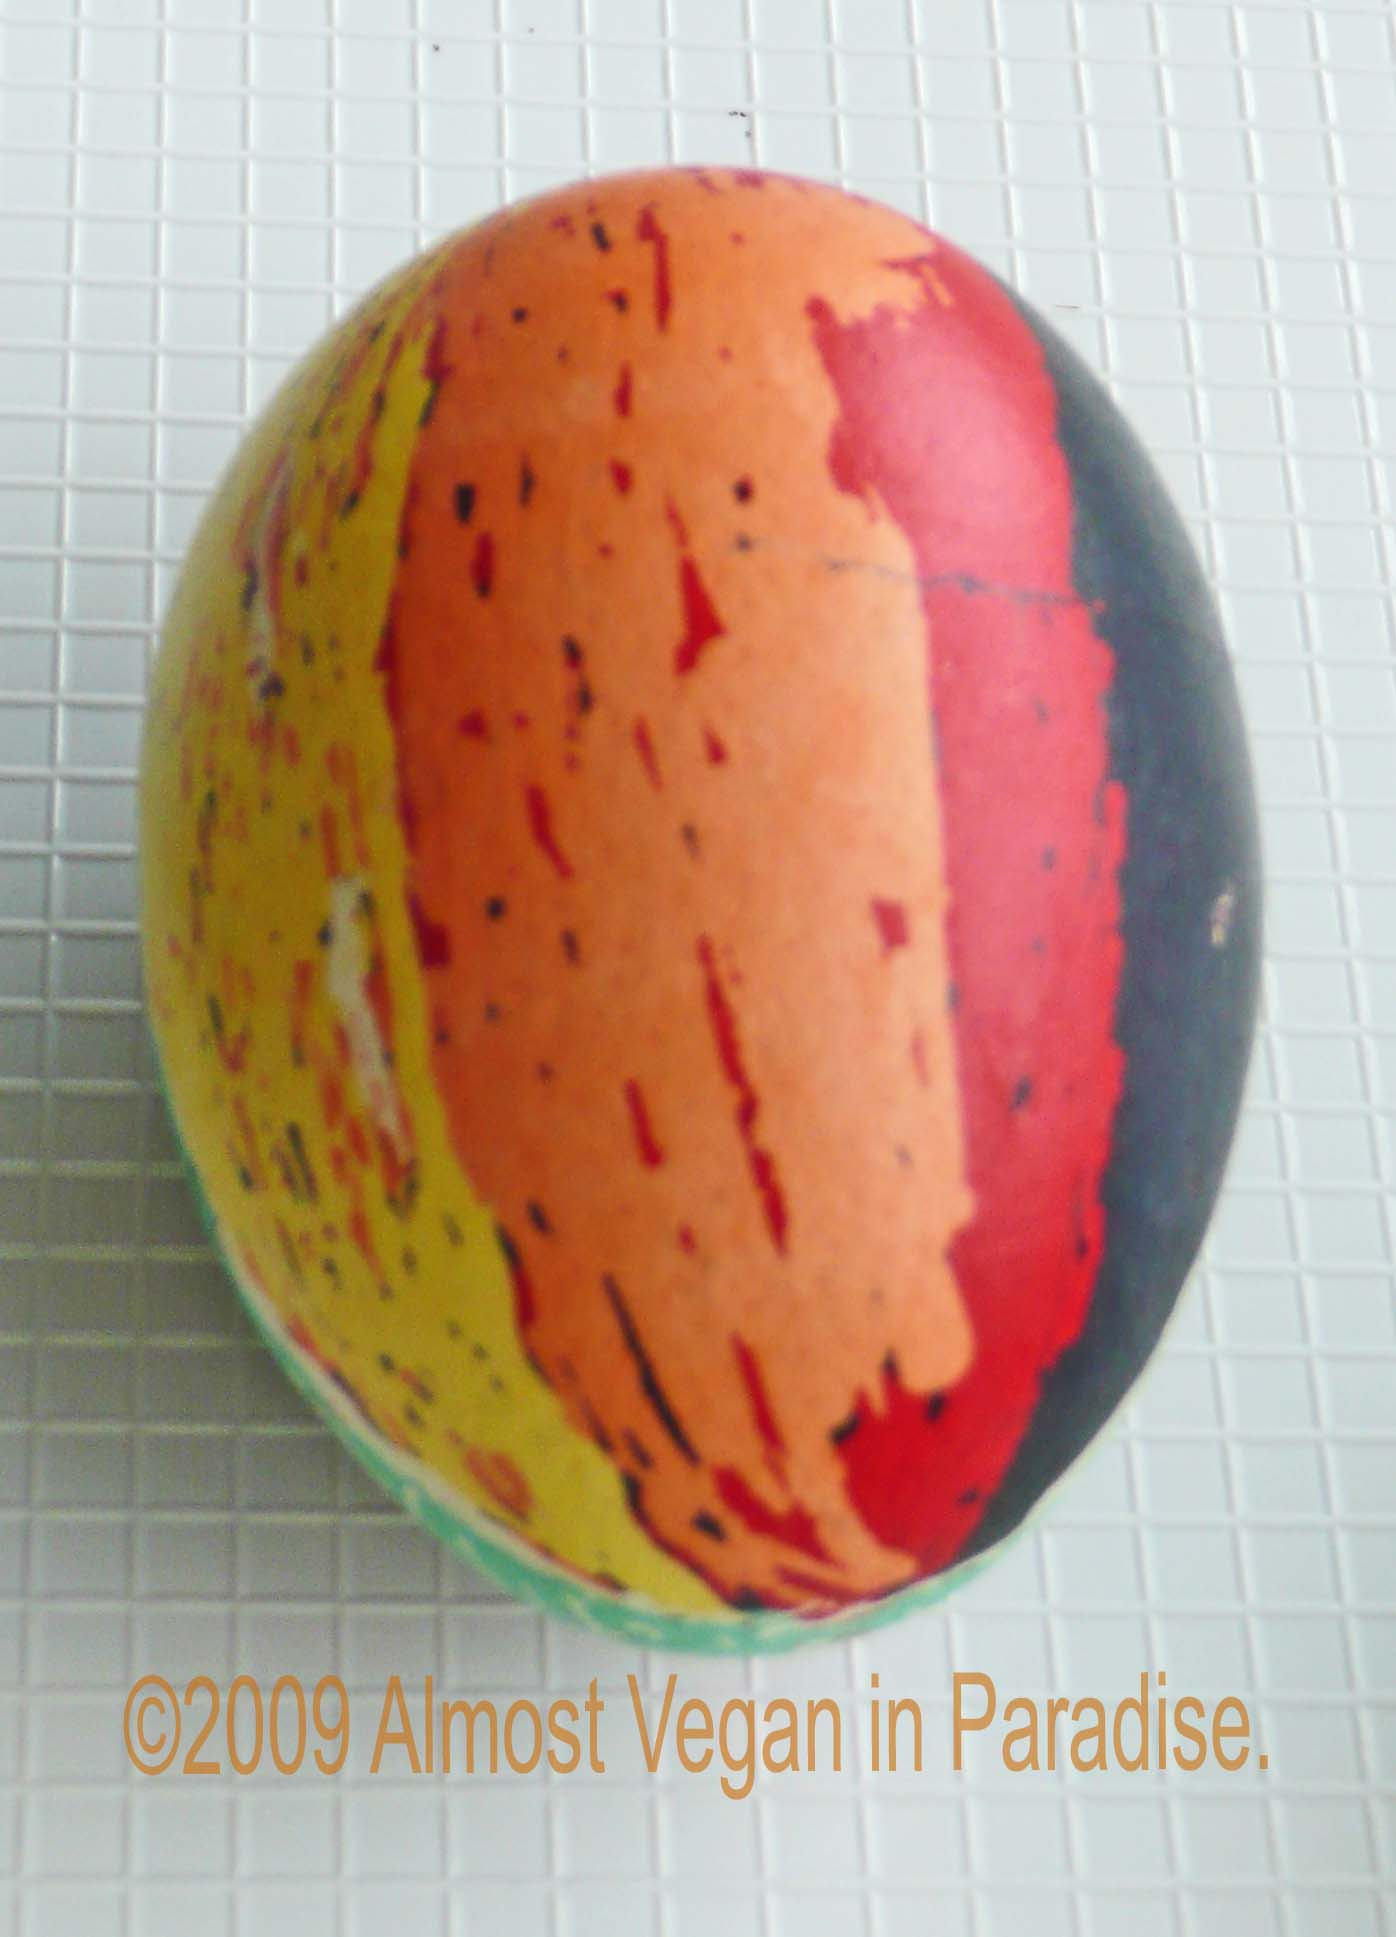 Rafe's egg (the other side was black with stars)